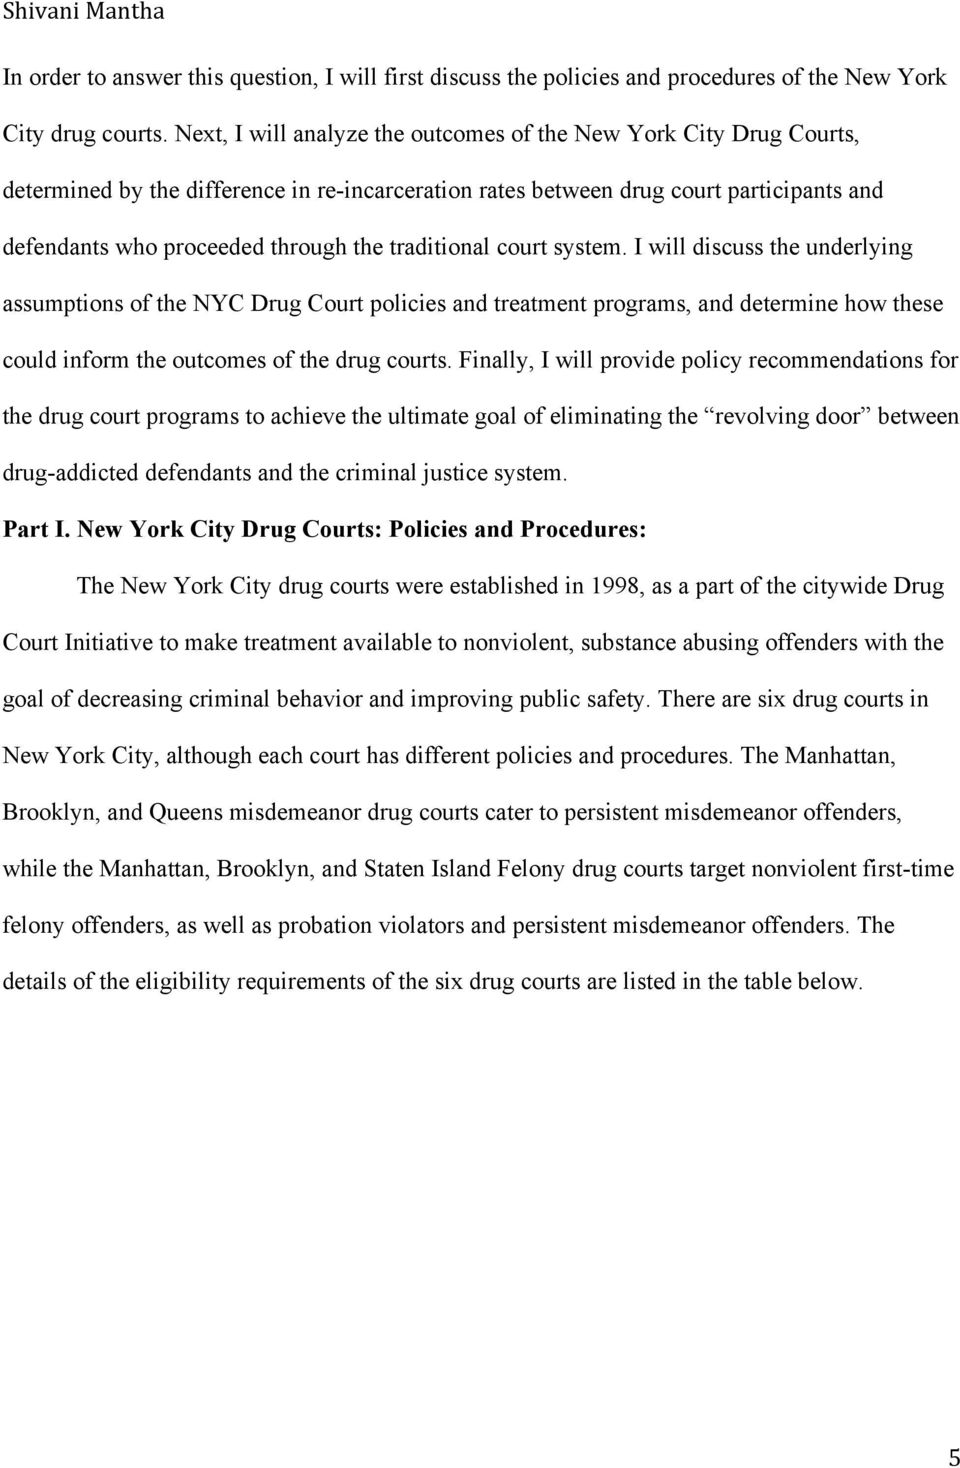 traditional court system. I will discuss the underlying assumptions of the NYC Drug Court policies and treatment programs, and determine how these could inform the outcomes of the drug courts.